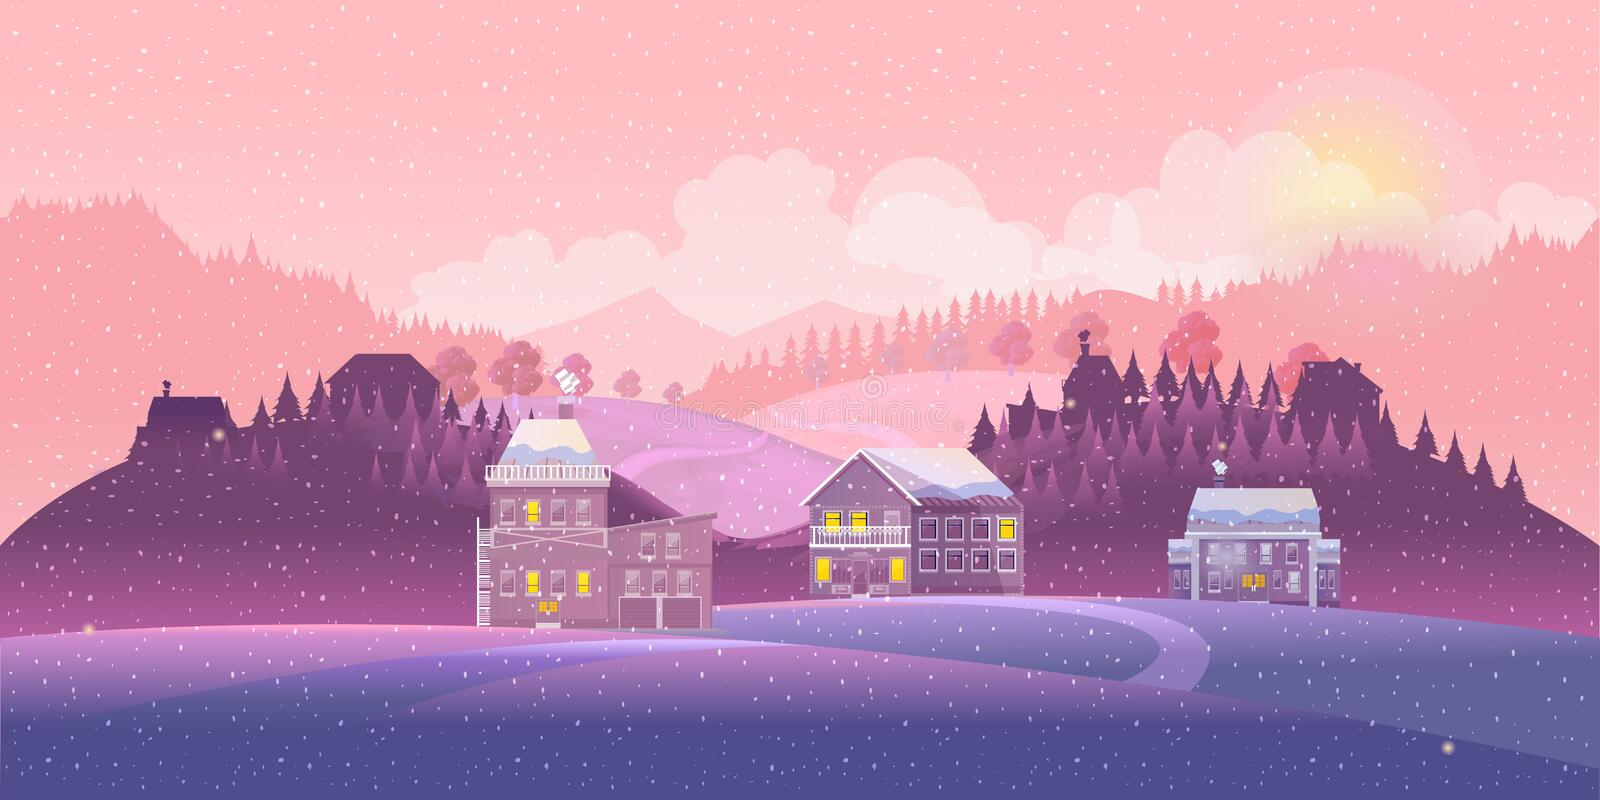 Winter Snow Urban Countryside Landscape City Village with full moon,Happy new year and Merry christmas,paper art craft royalty free illustration